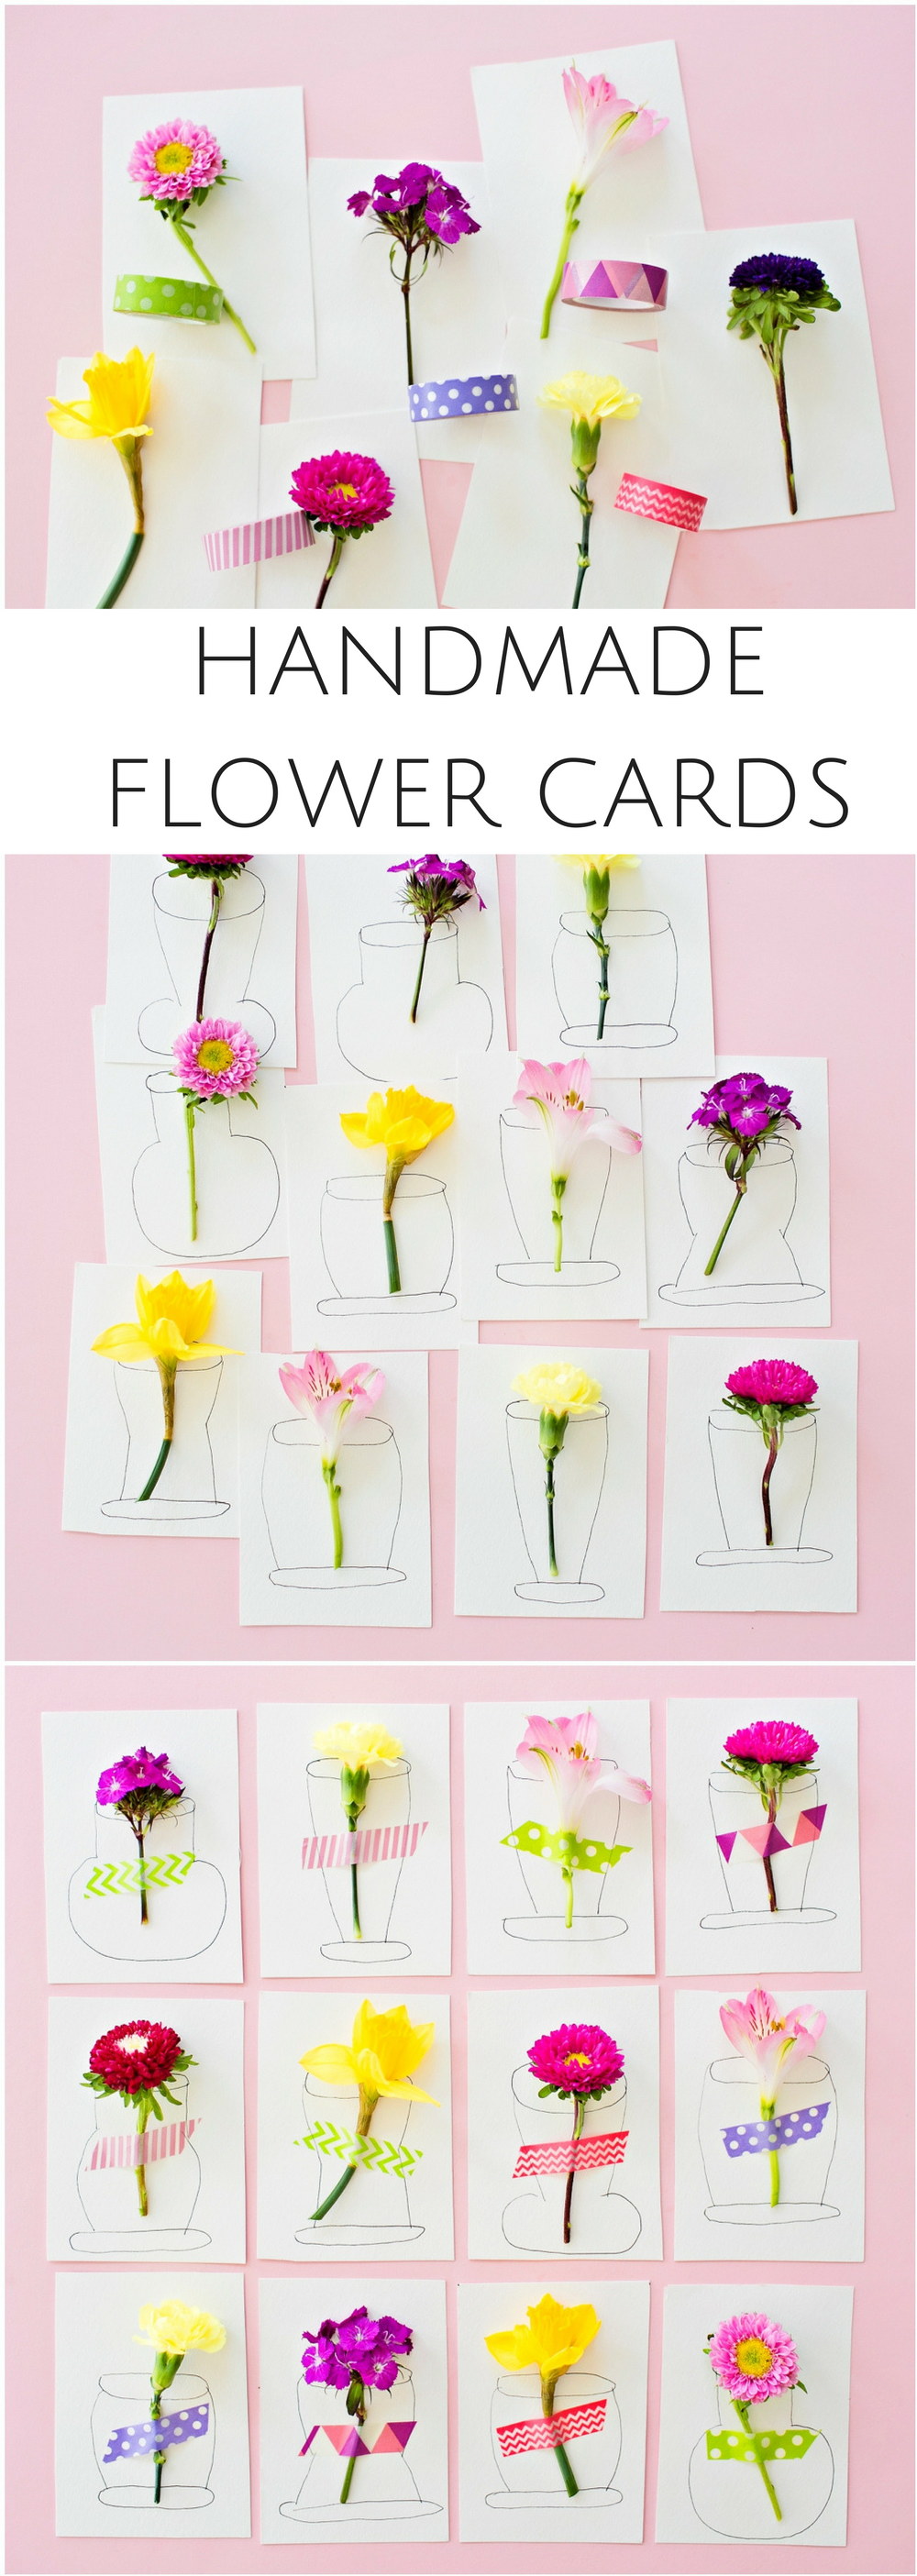 Pretty d flower handmade cards cool things i have no time to do